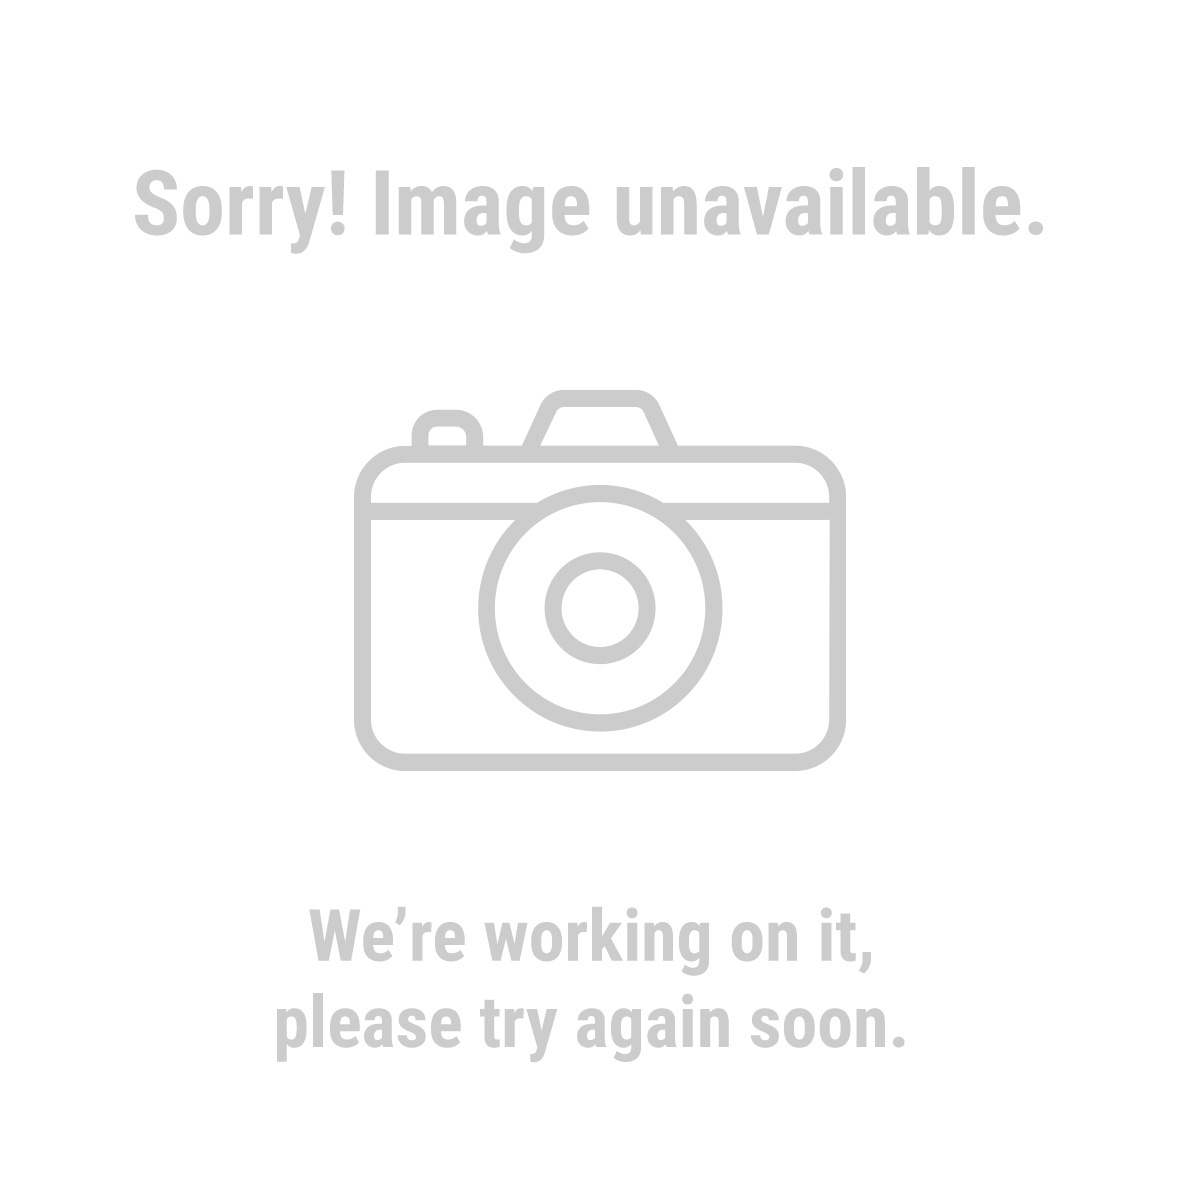 HFT 60469 19 ft. x 39 ft. 4 in. All Purpose Weather Resistant Tarp